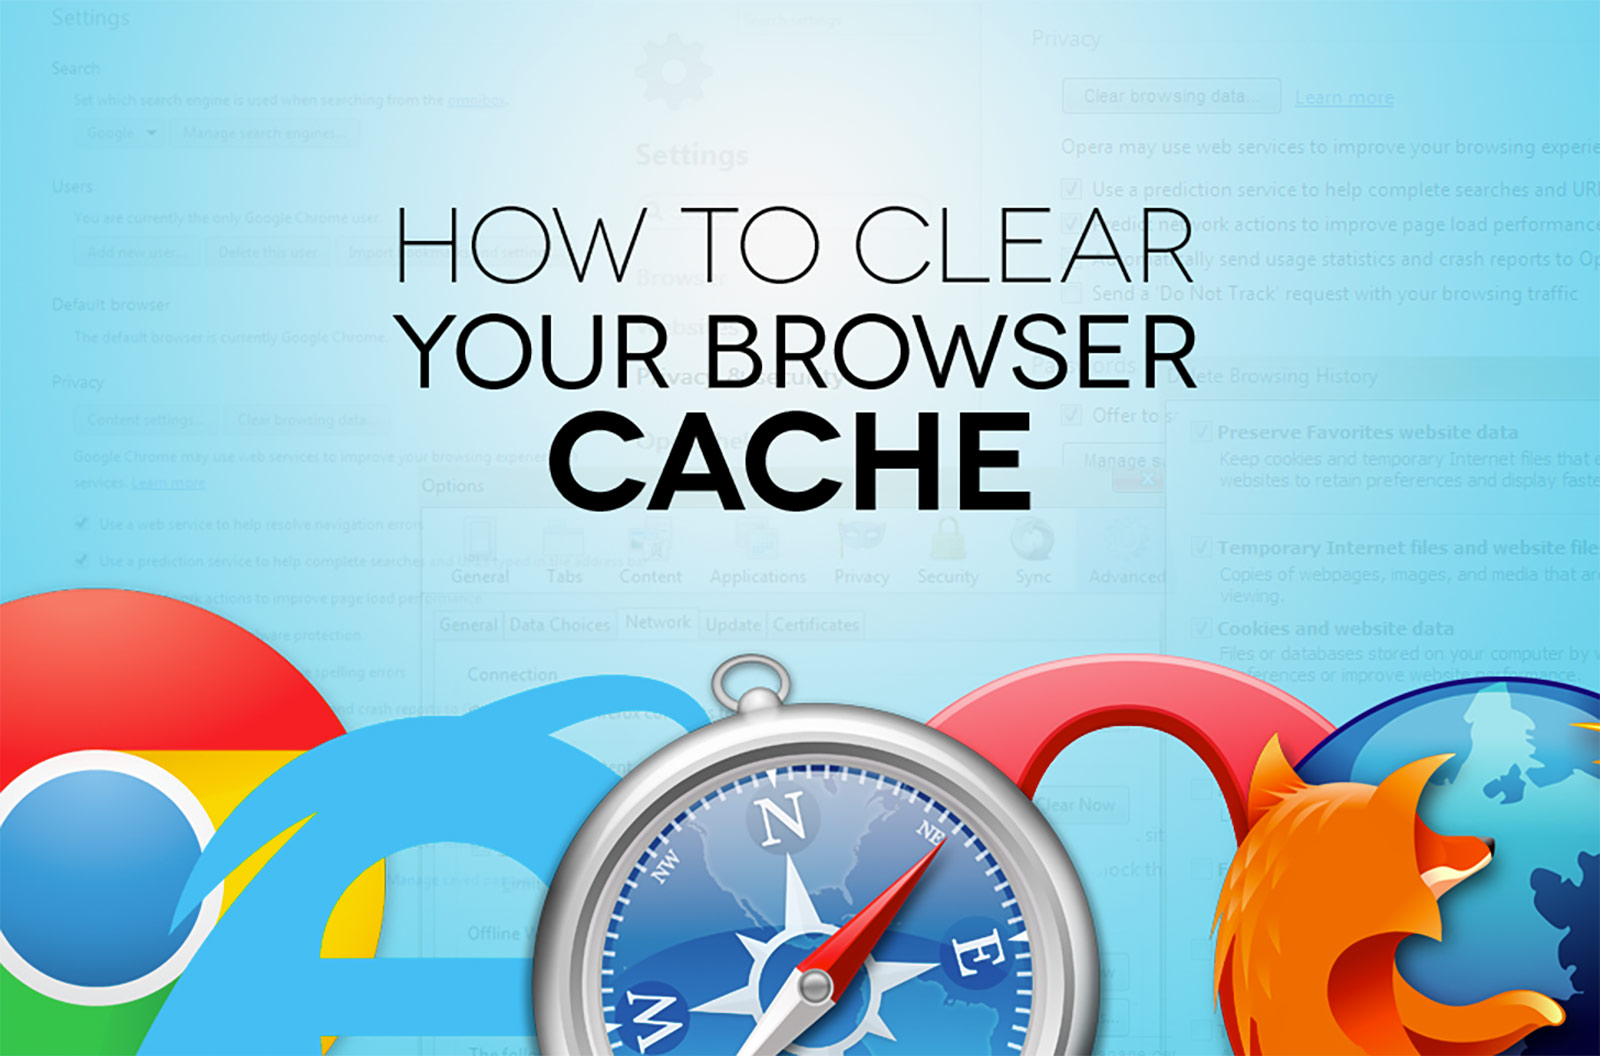 Featured Image You Need To Clear Your Cache!  But What Does That Mean?